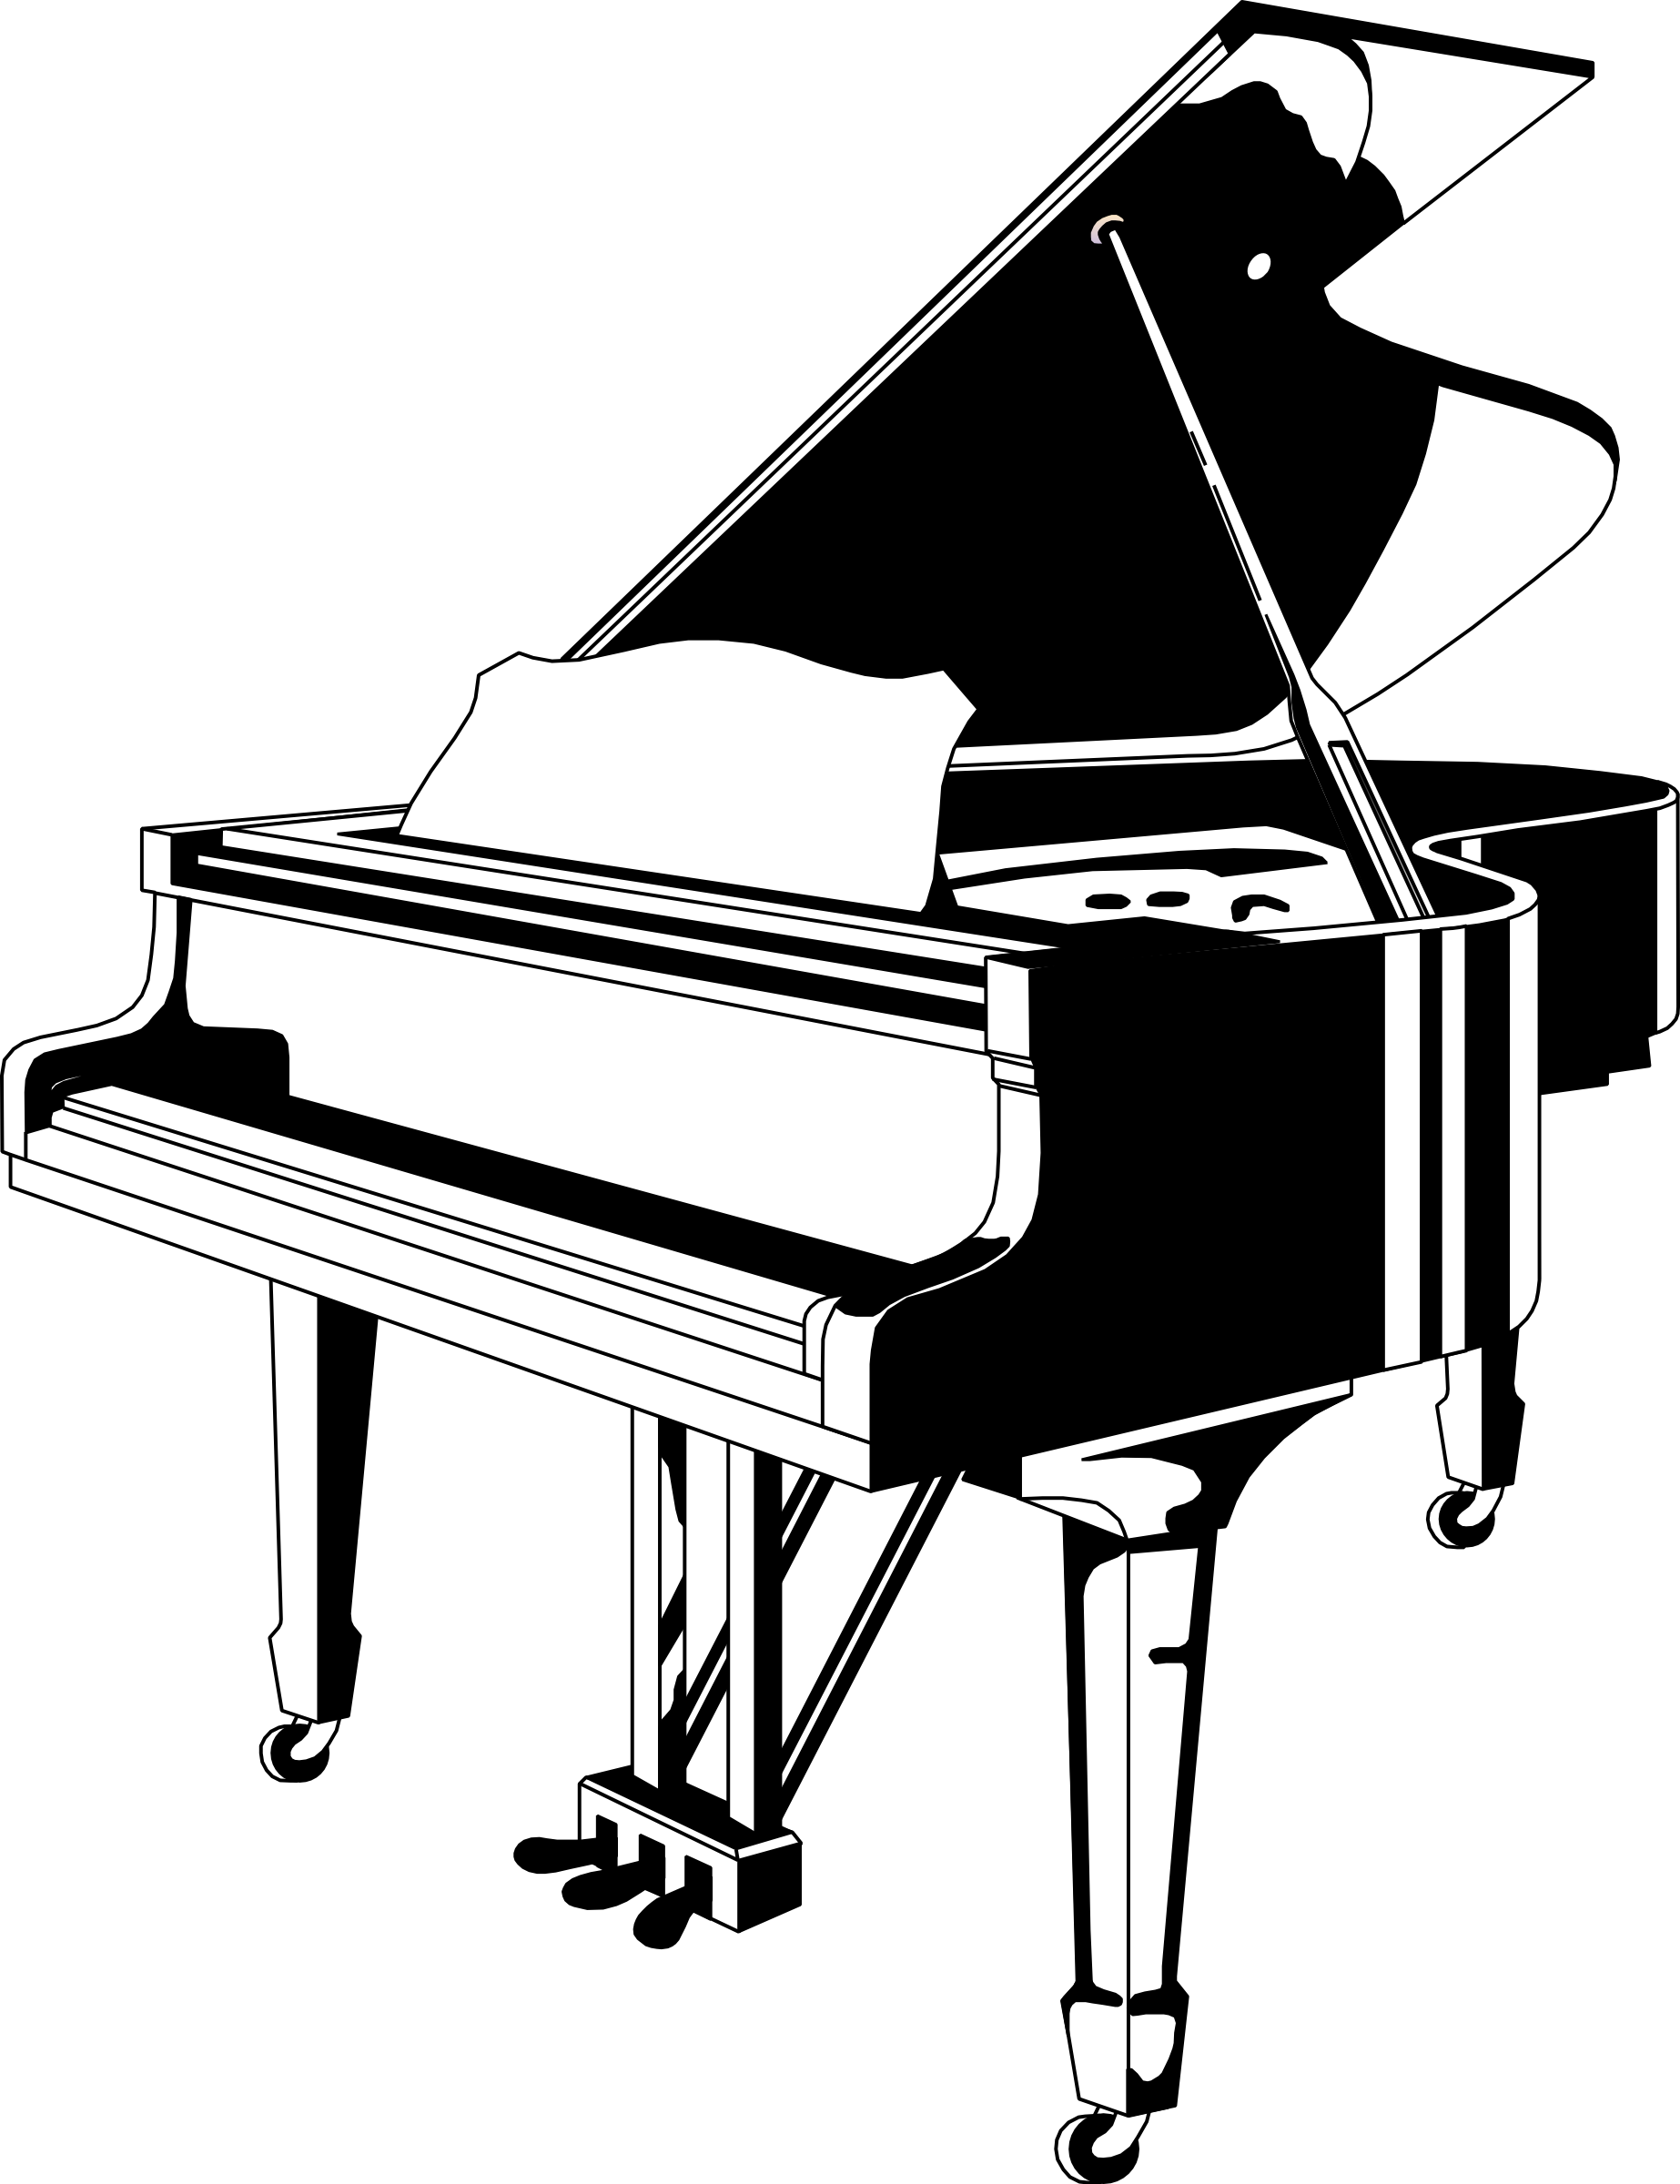 Panda free images pianoclipart. Piano clipart music radio